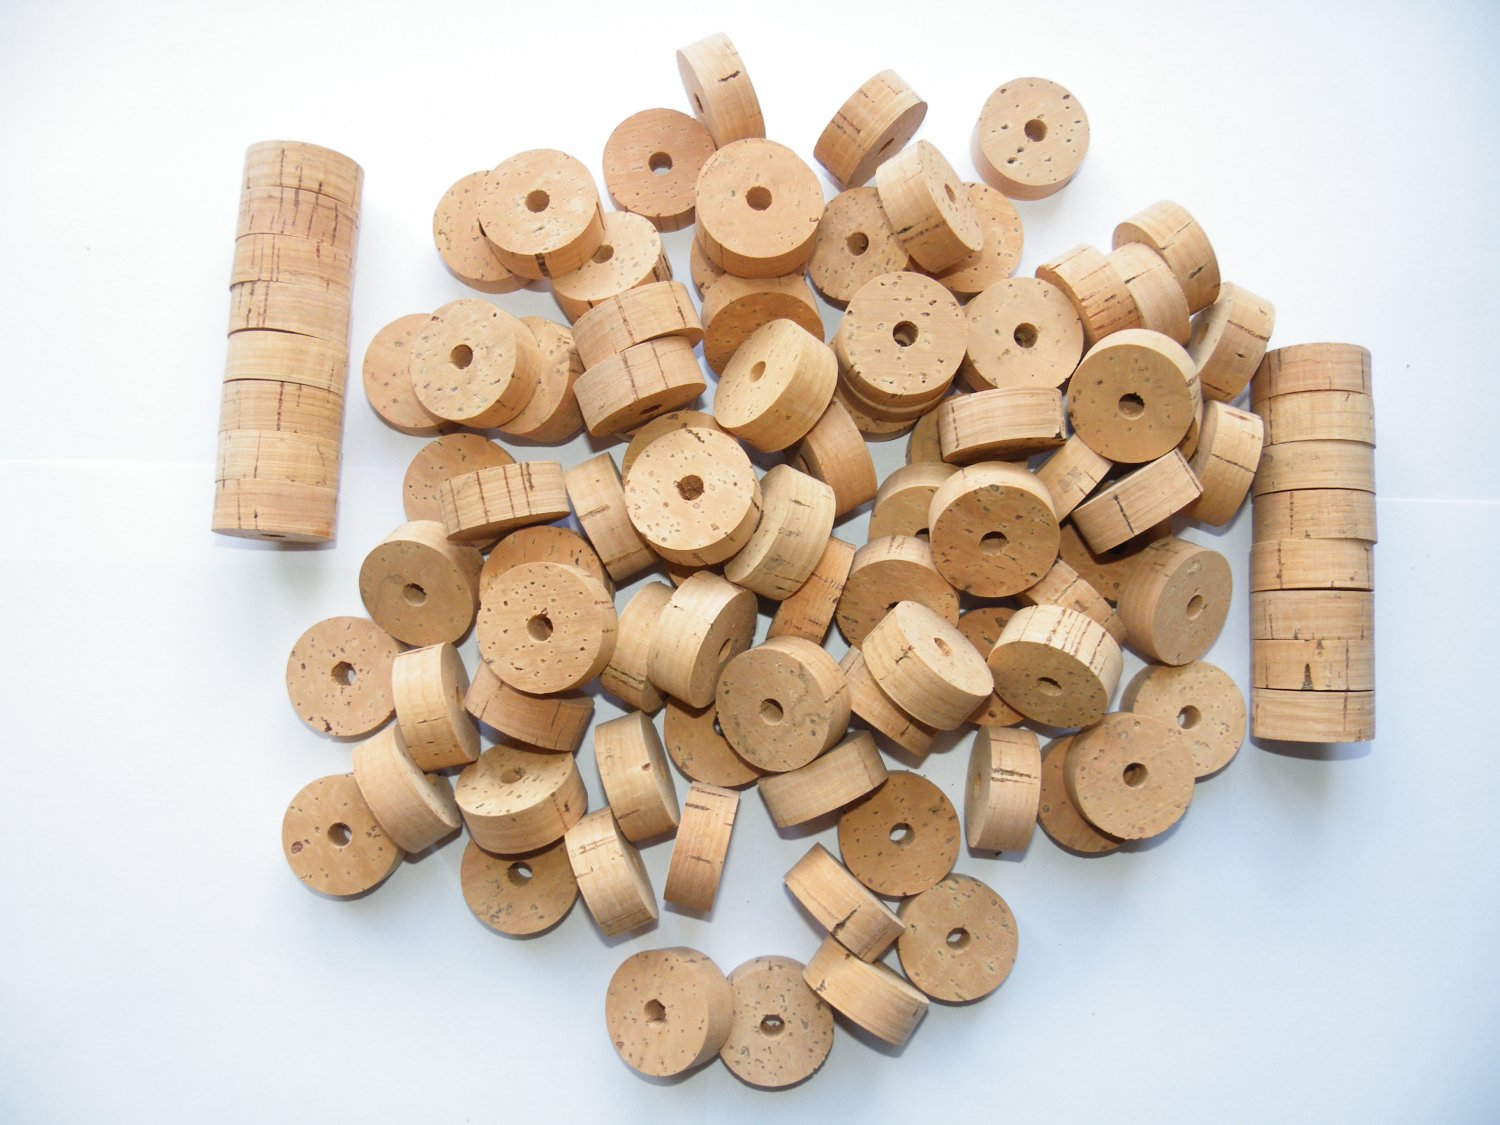 """100 CORK RINGS 11/4""""X1/2"""" BORE 1/4"""" OVERSTOCK FLOR - 1.25"""